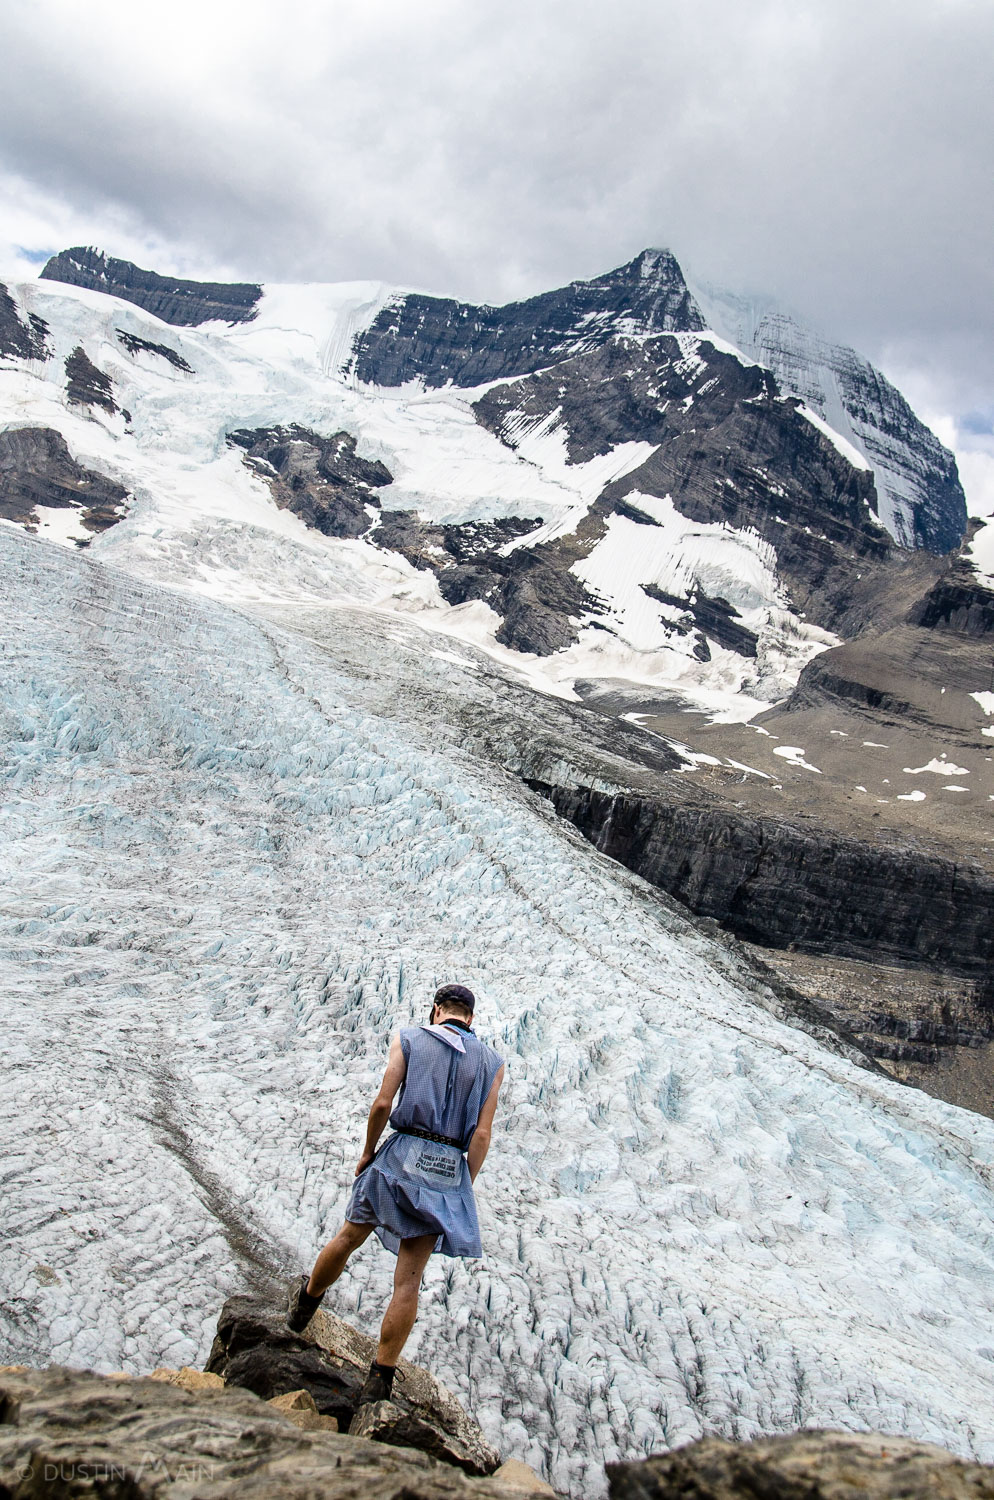 On the edge of a cliff, looking out over the massive Robson Glacier, with Mt Robson (the highest mountain in the Canadian Rockies) in the background. © Dustin Main 2012